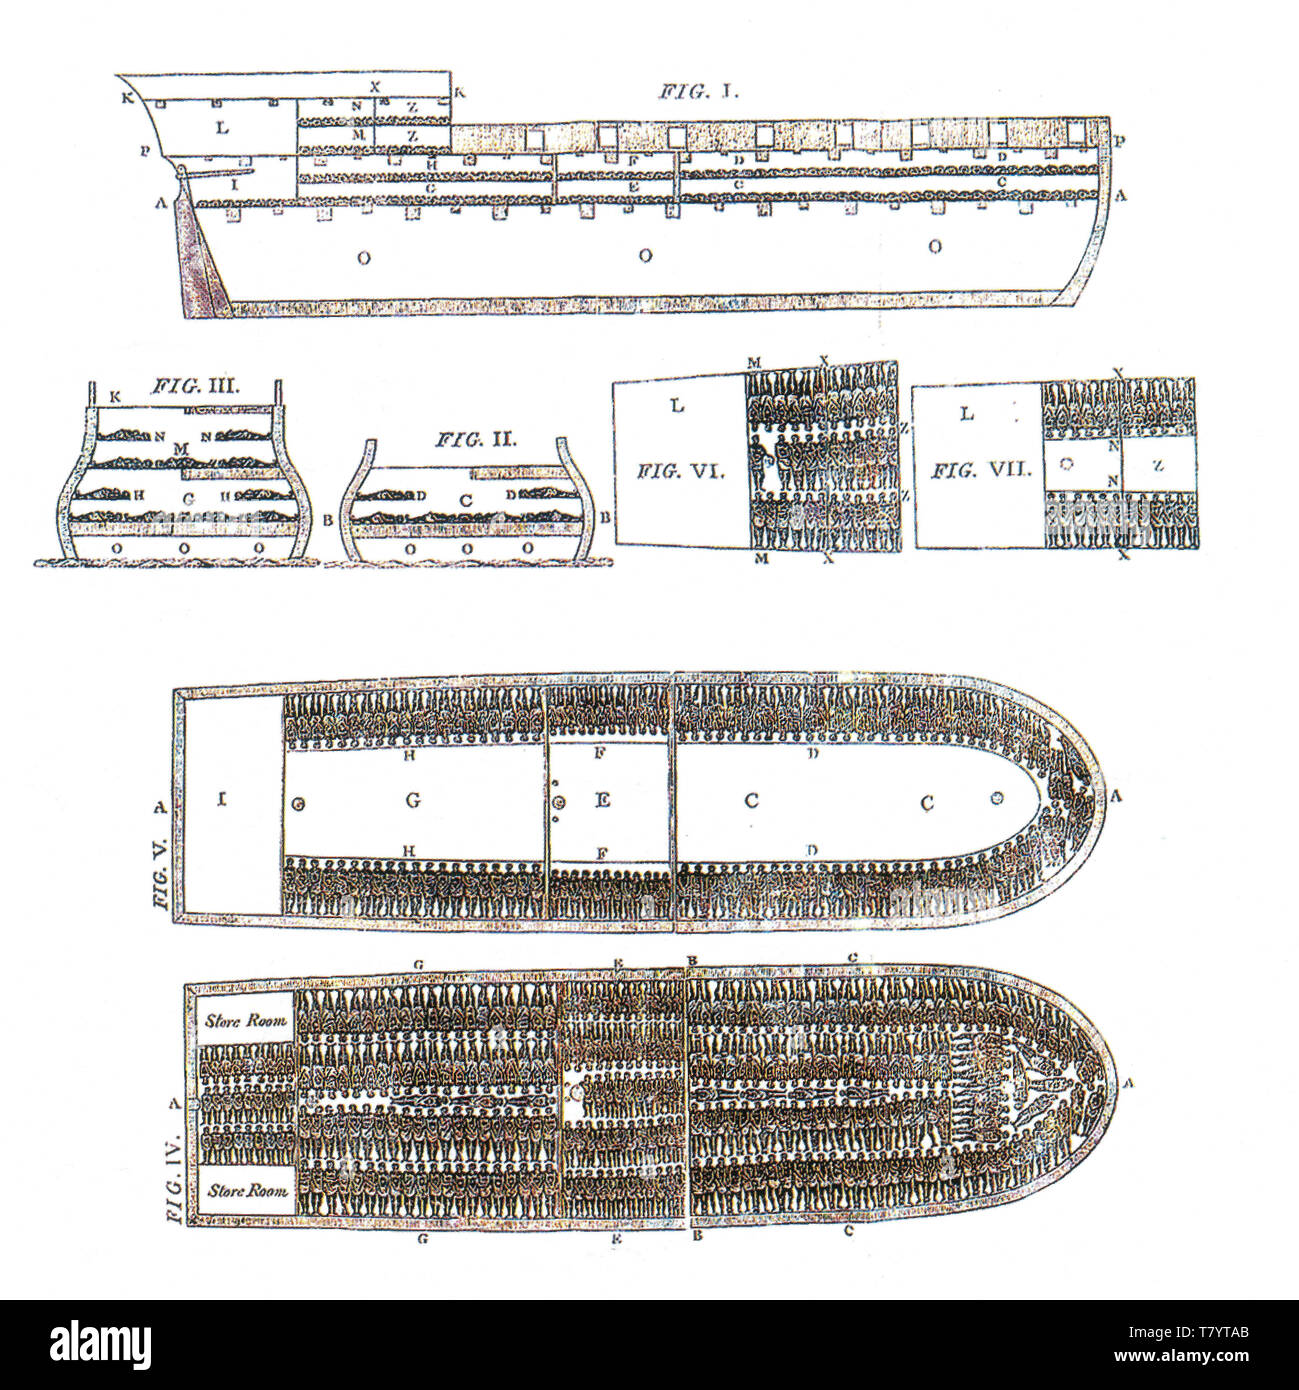 hight resolution of brookes english slave ship 1788